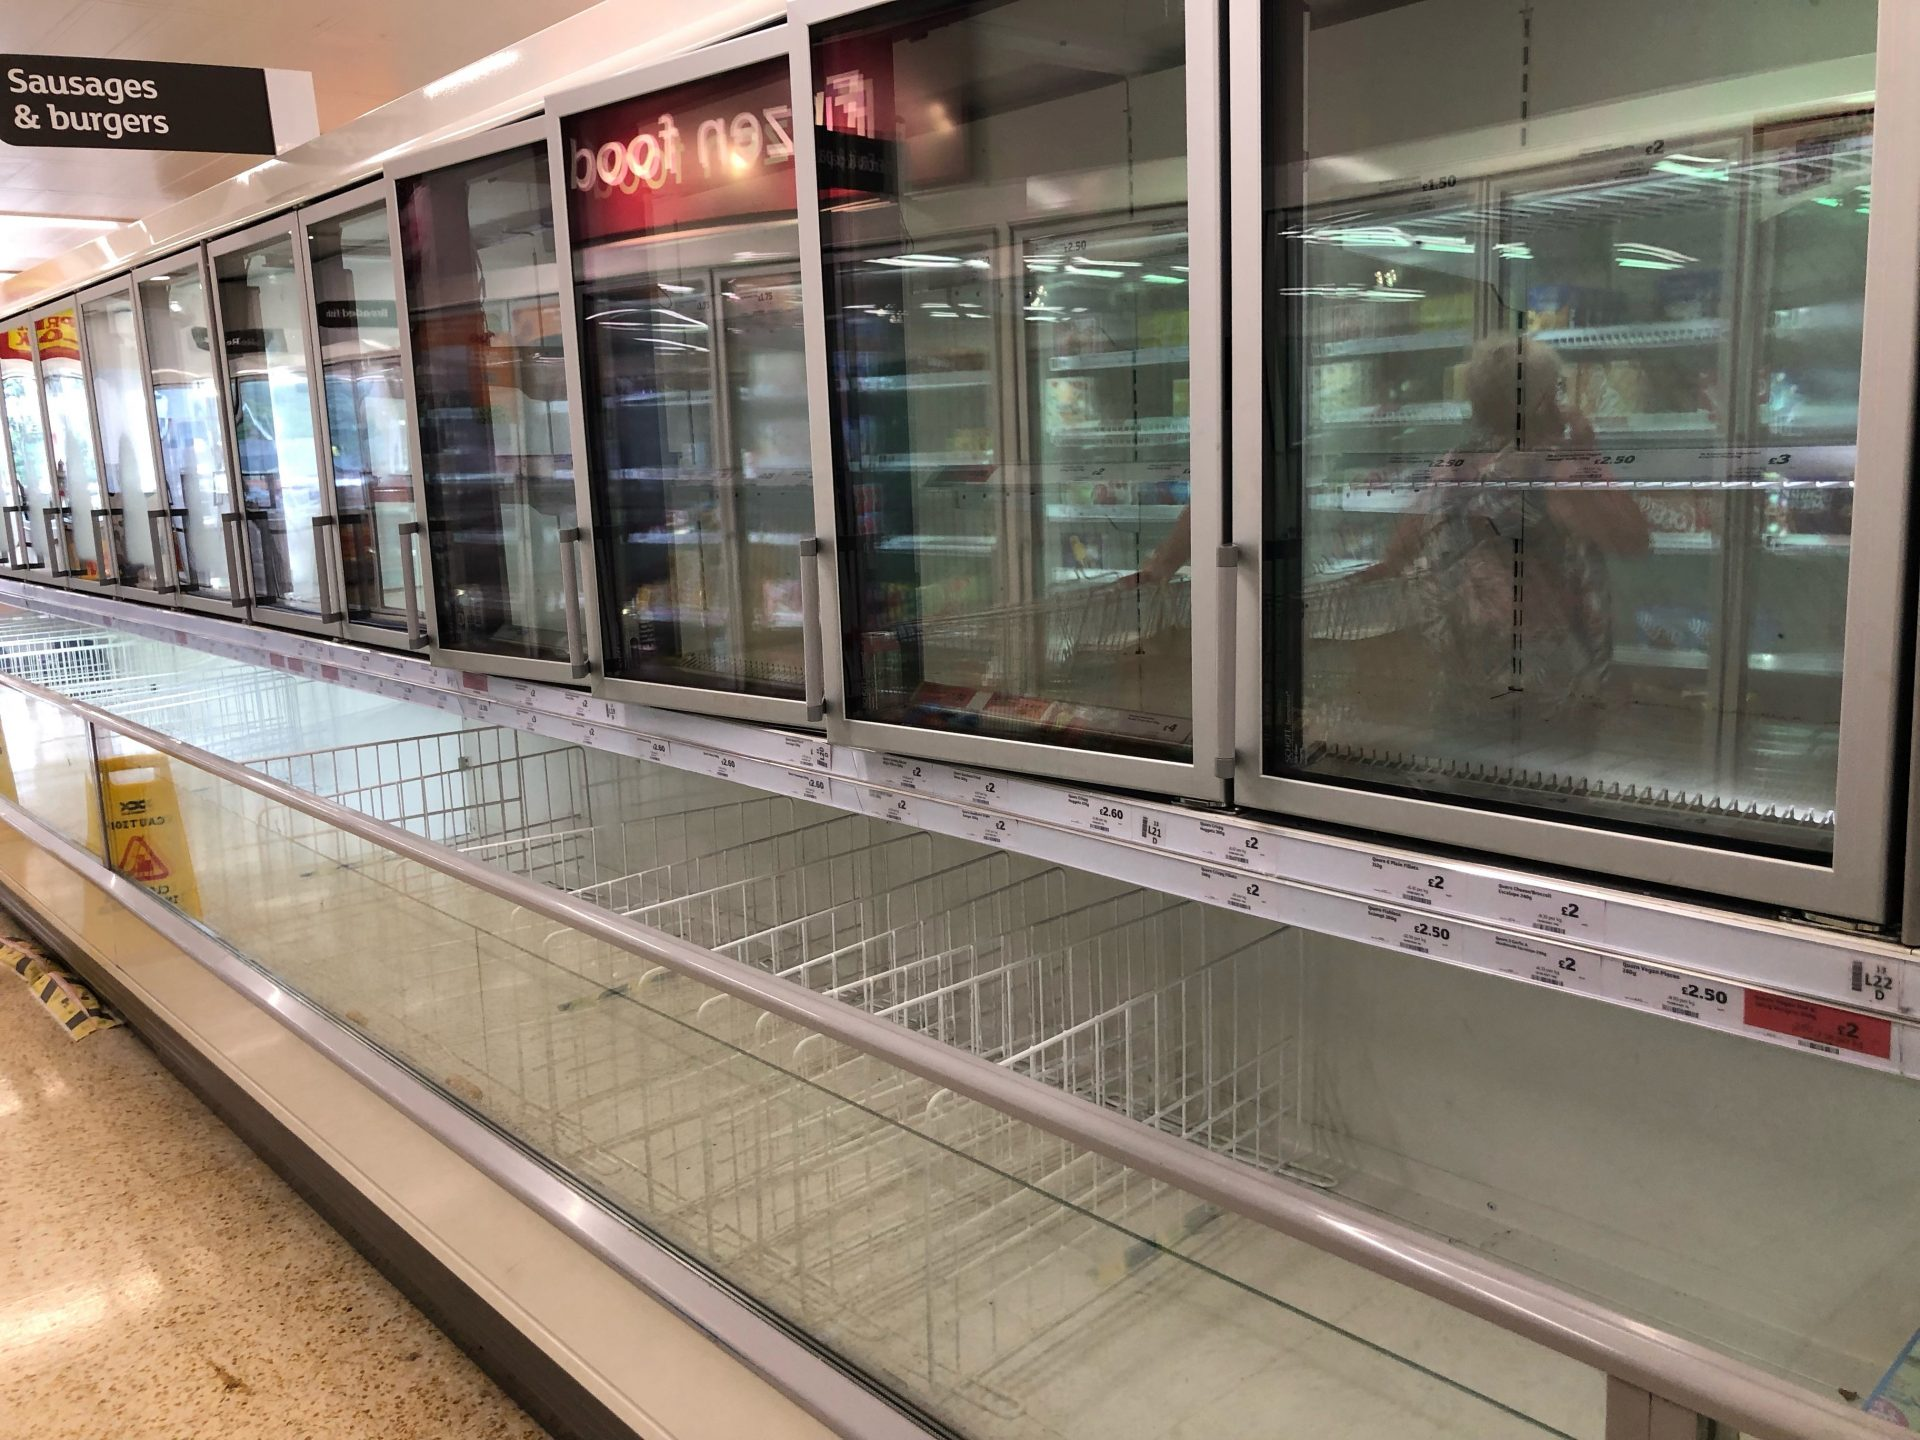 The empty sausage and burger section of the freezer aisle at the Sainsbury supermarket at the Arnison Centre, Durham. Photograph: PA Images.